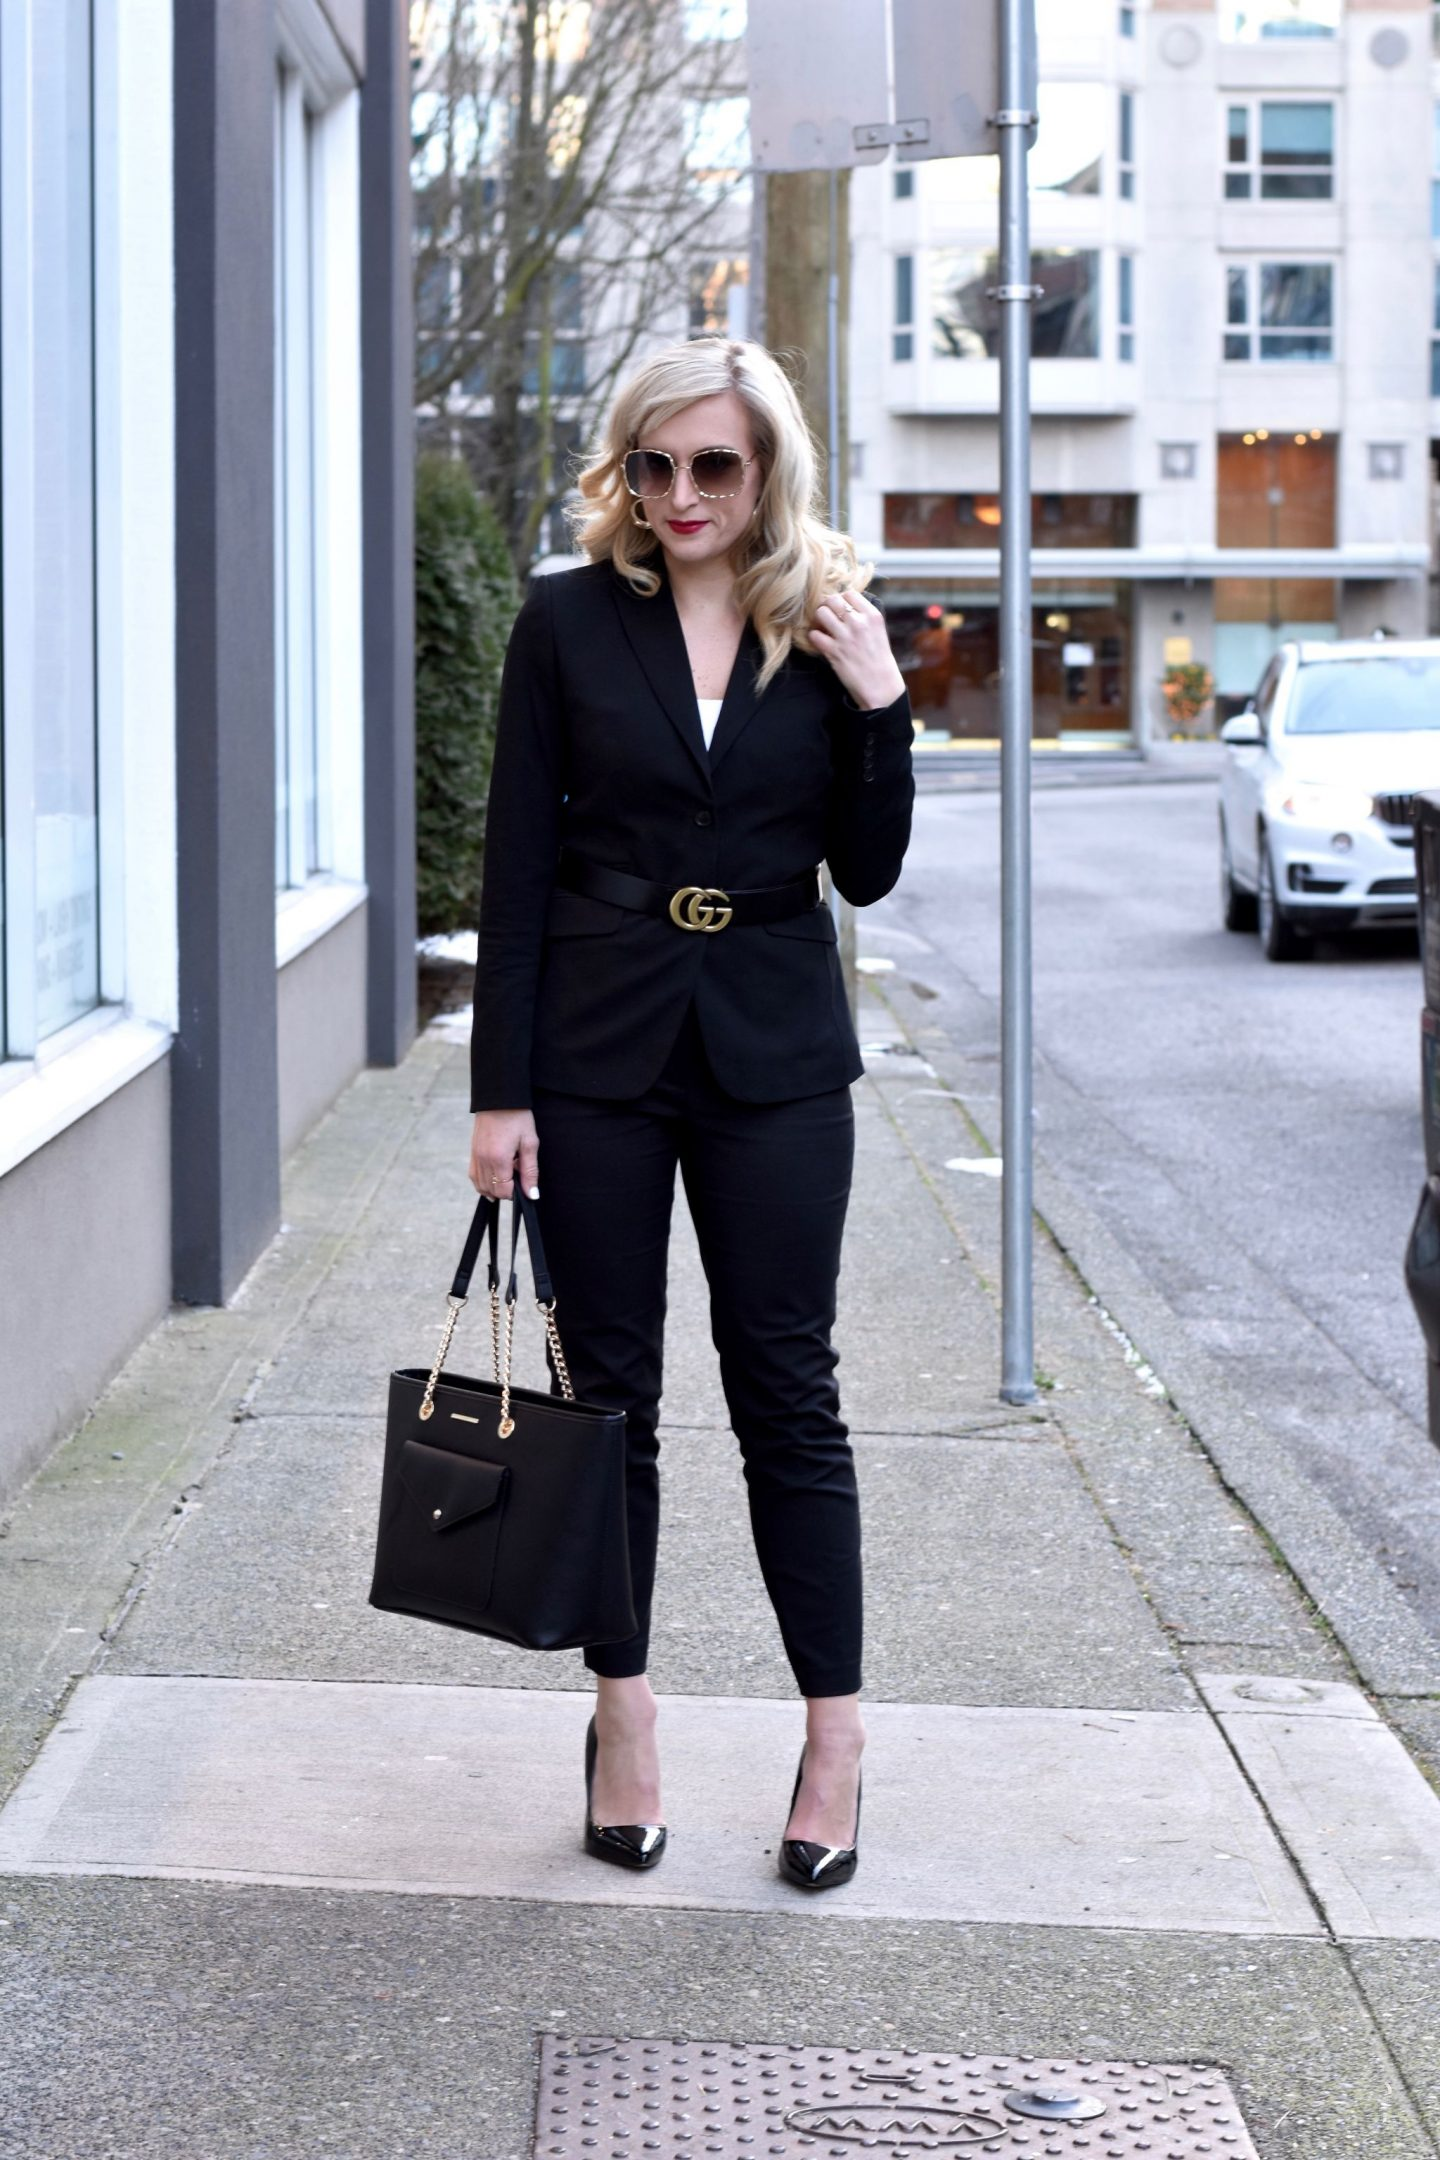 pant suit for young working women